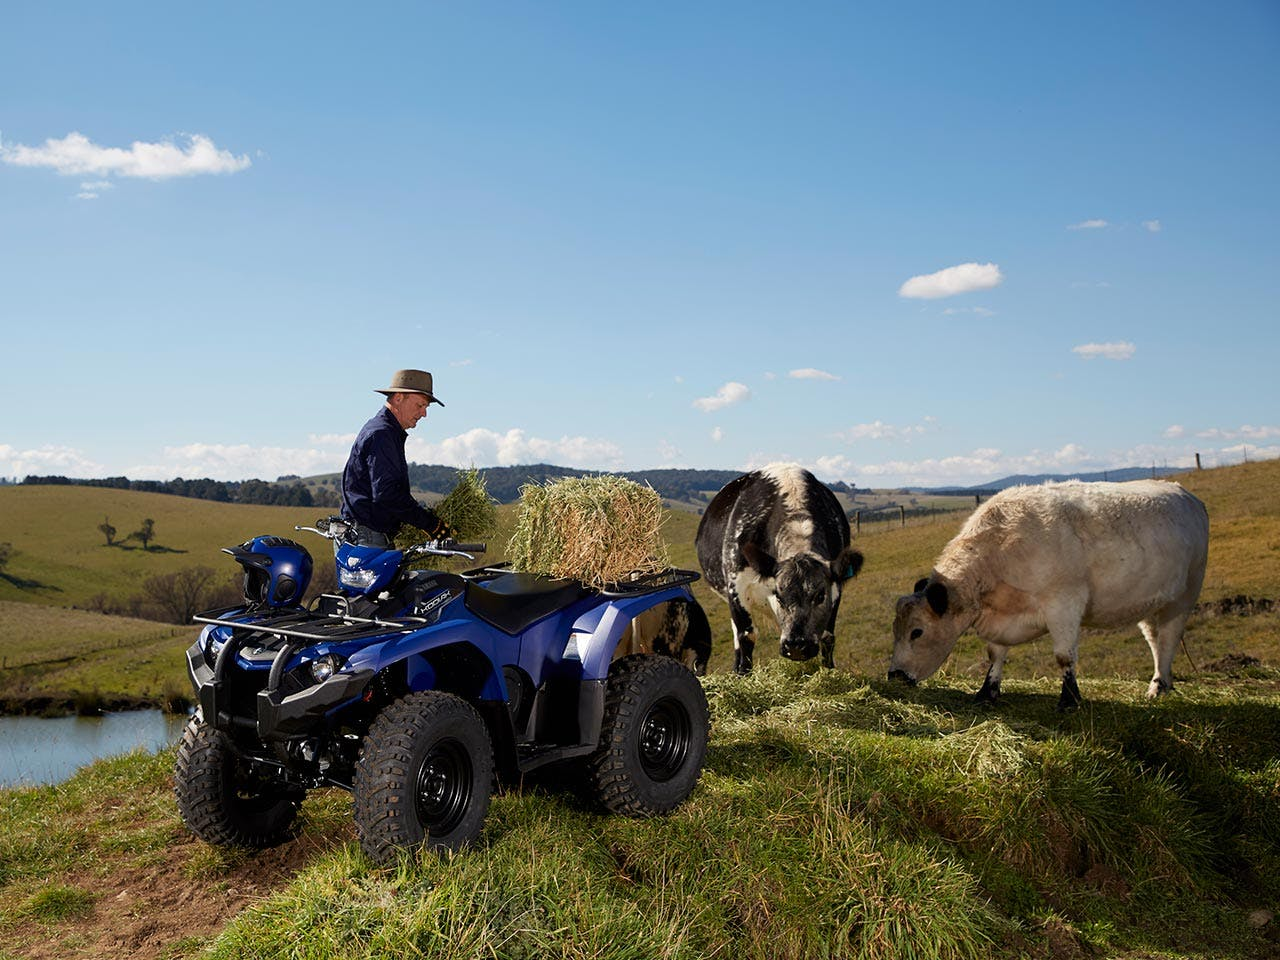 Yamaha Kodiak 450 EPS in steel blue colour loaded with hay bales